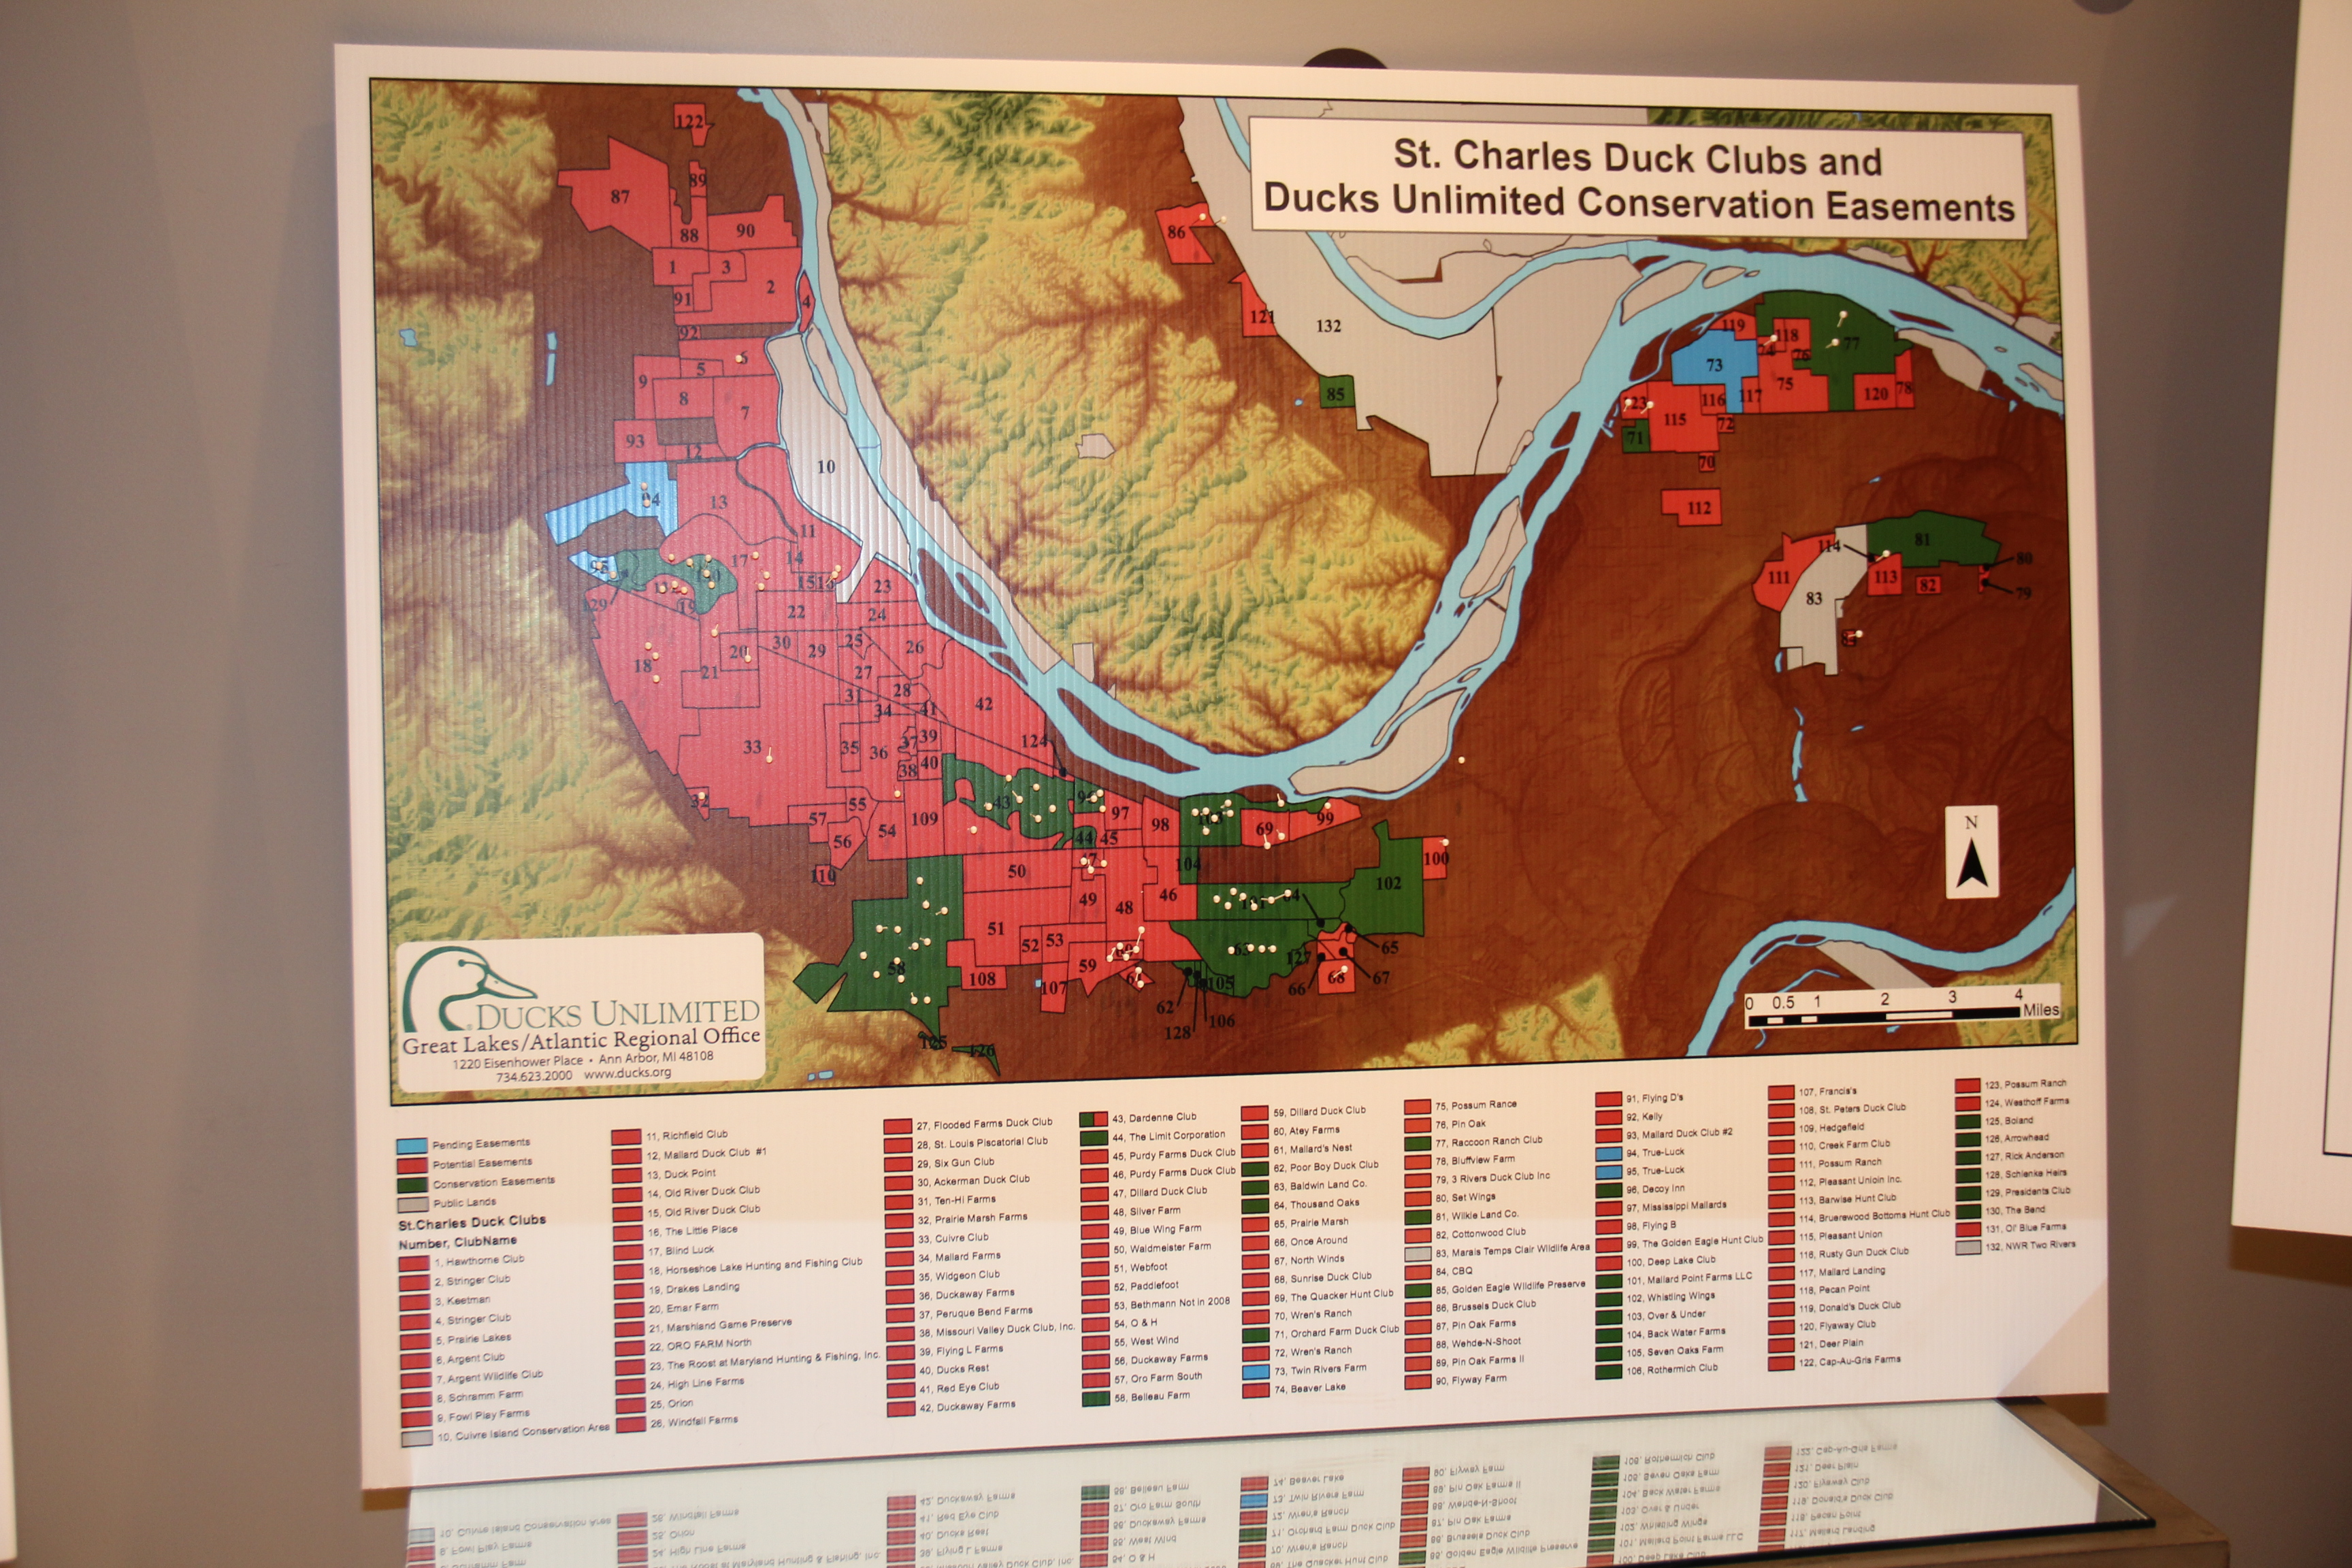 map of st charles duck clubs and ducks unlimited